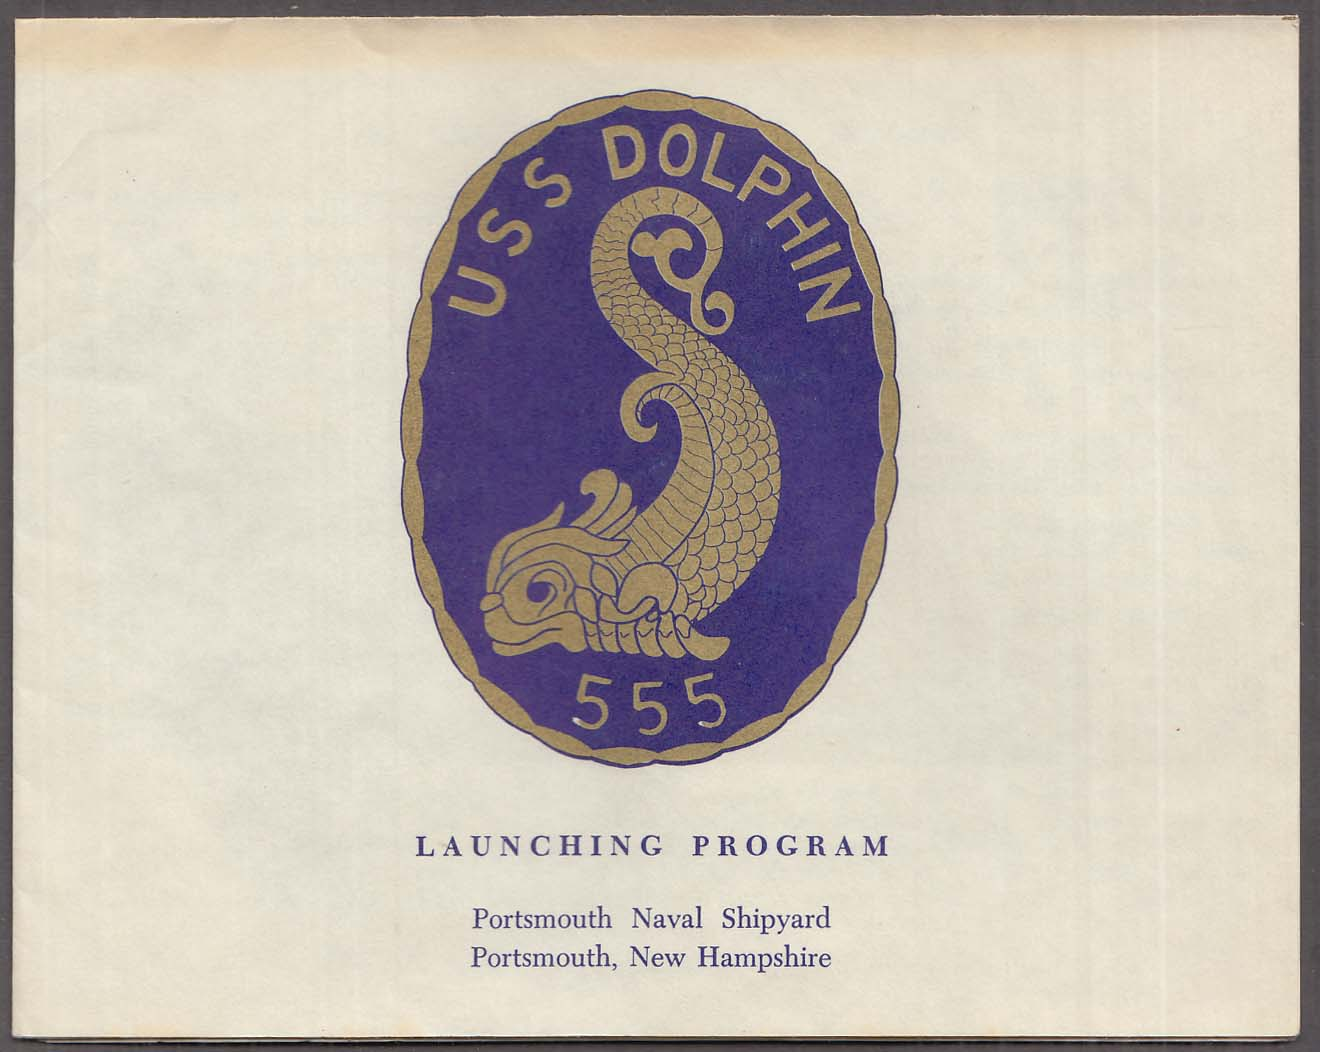 USS Dolphin AGDD-555 Submarine Launching Program Portsmouth NH 1968